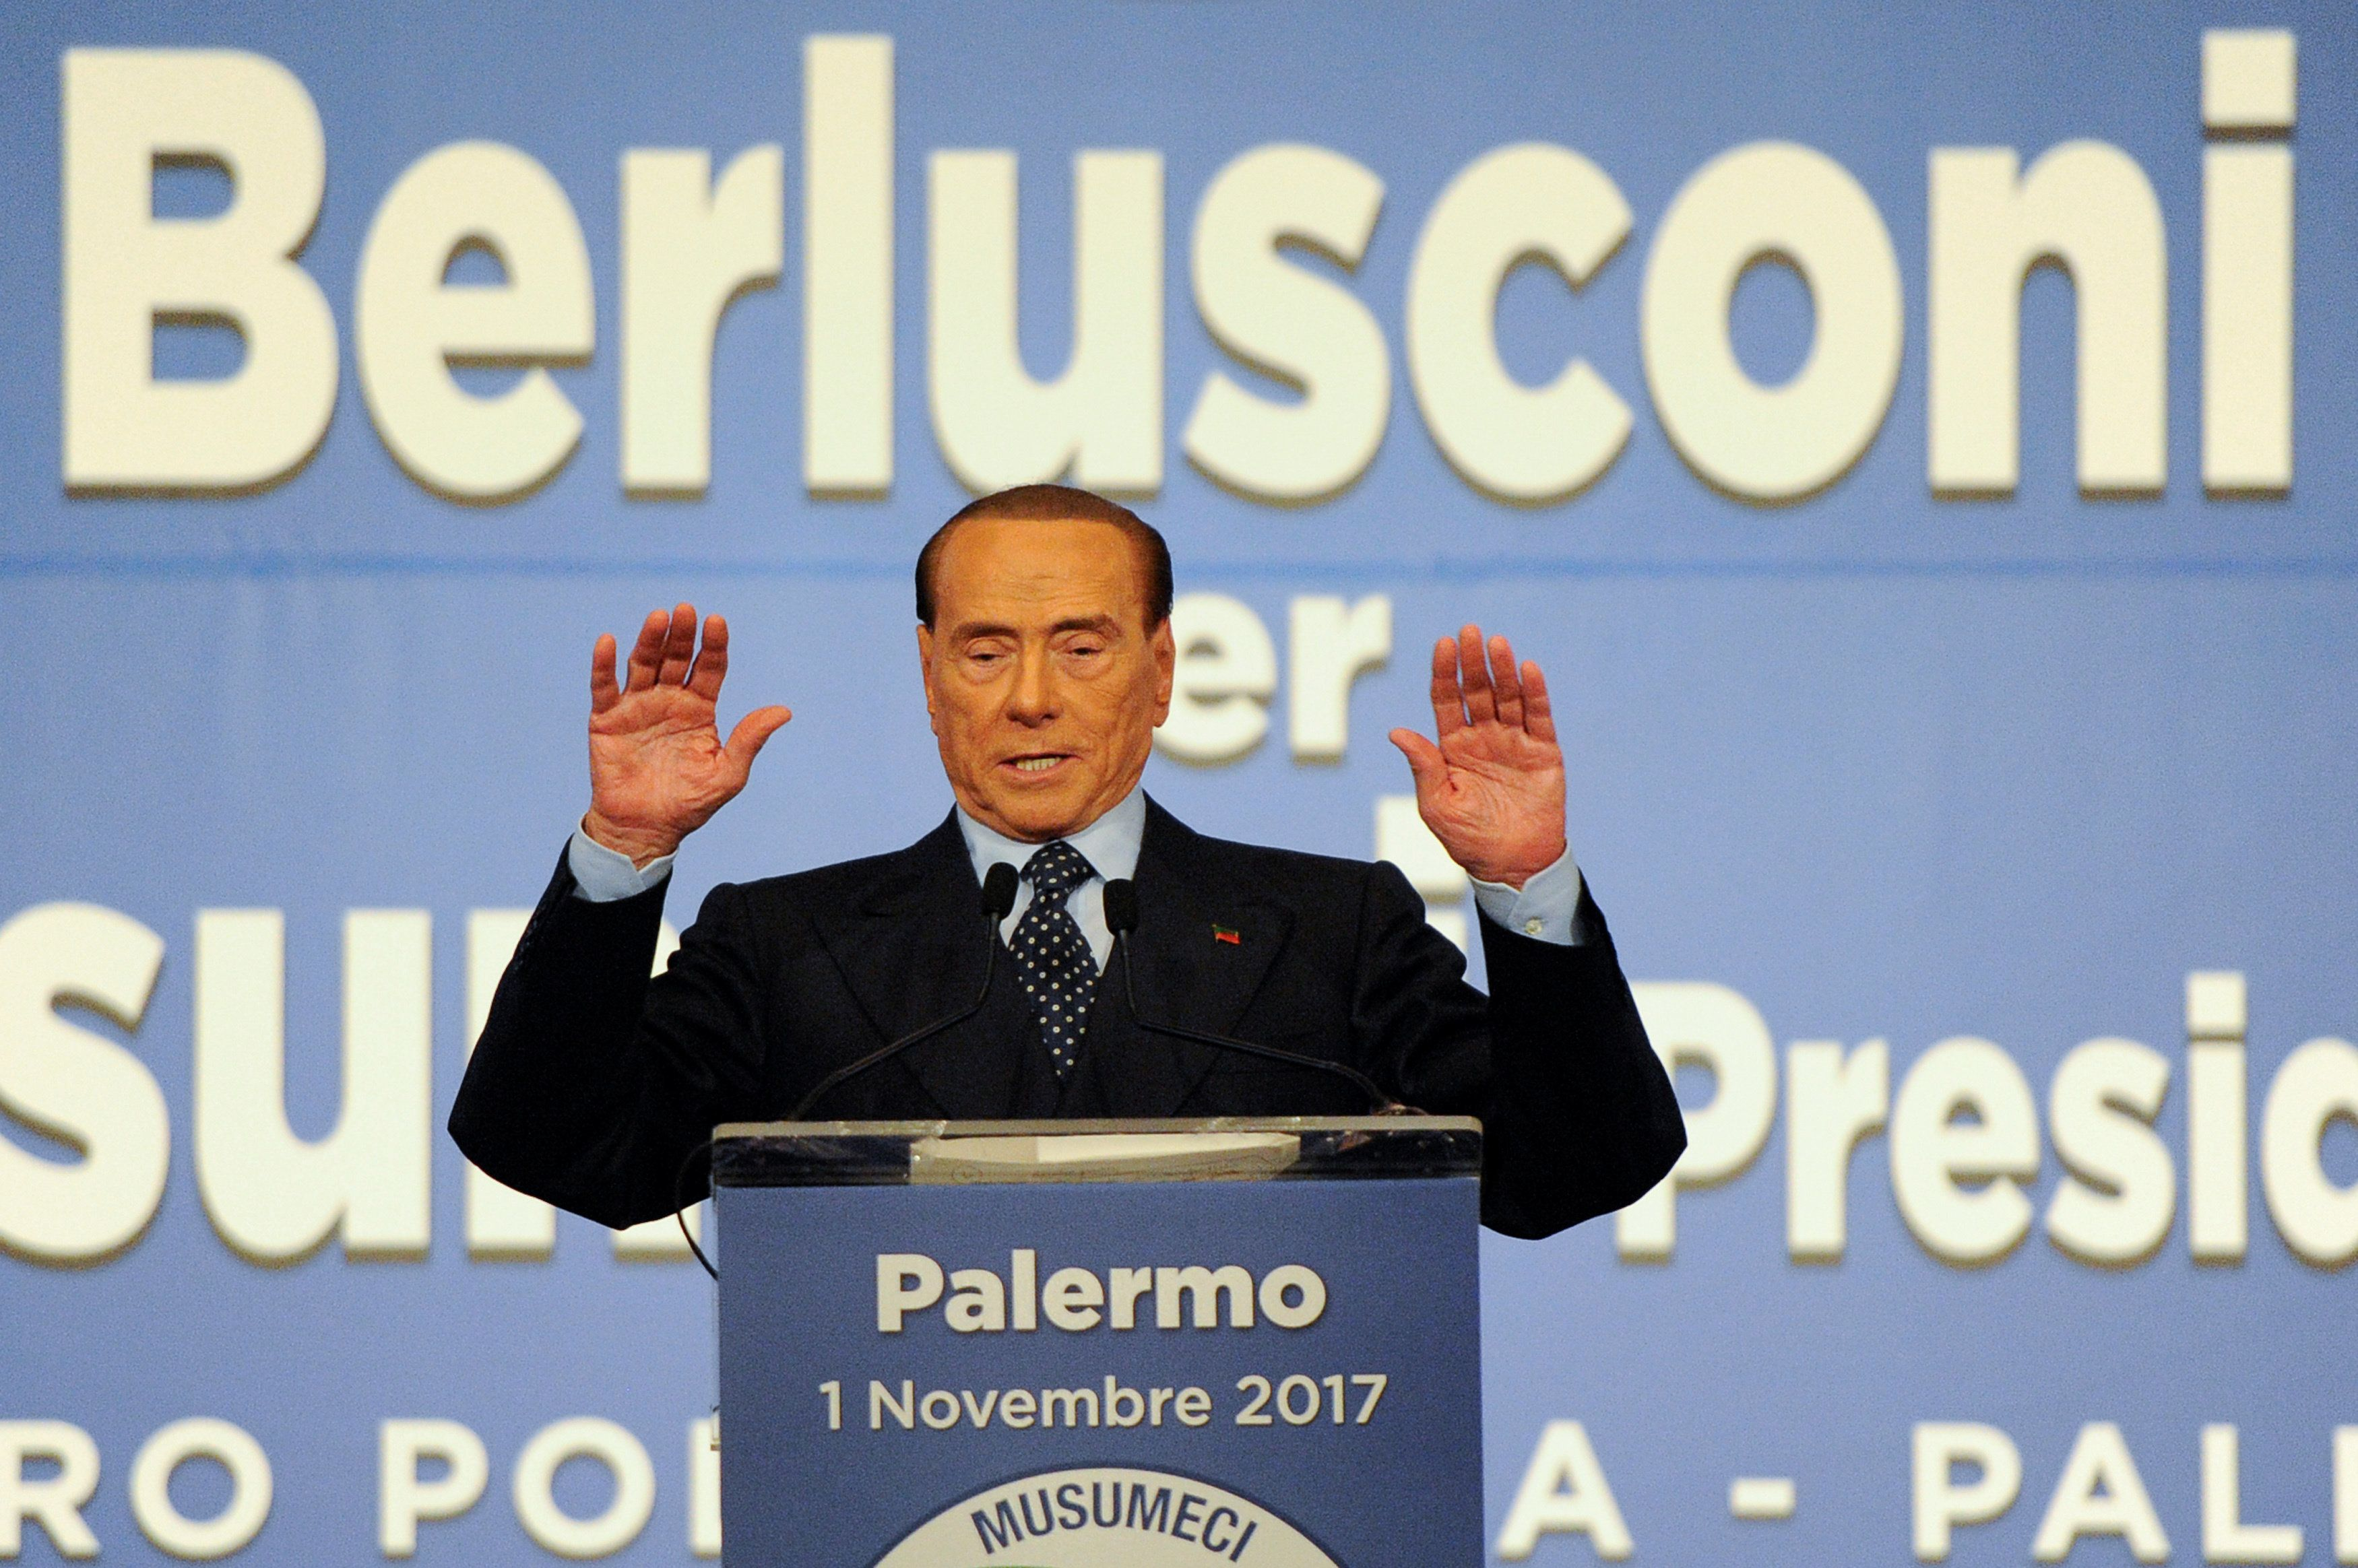 Forza Italia party leader Silvio Berlusconi gestures during a rally for the regional election in Palermo, Italy, November 1, 2017.   REUTERS/Guglielmo Mangiapane